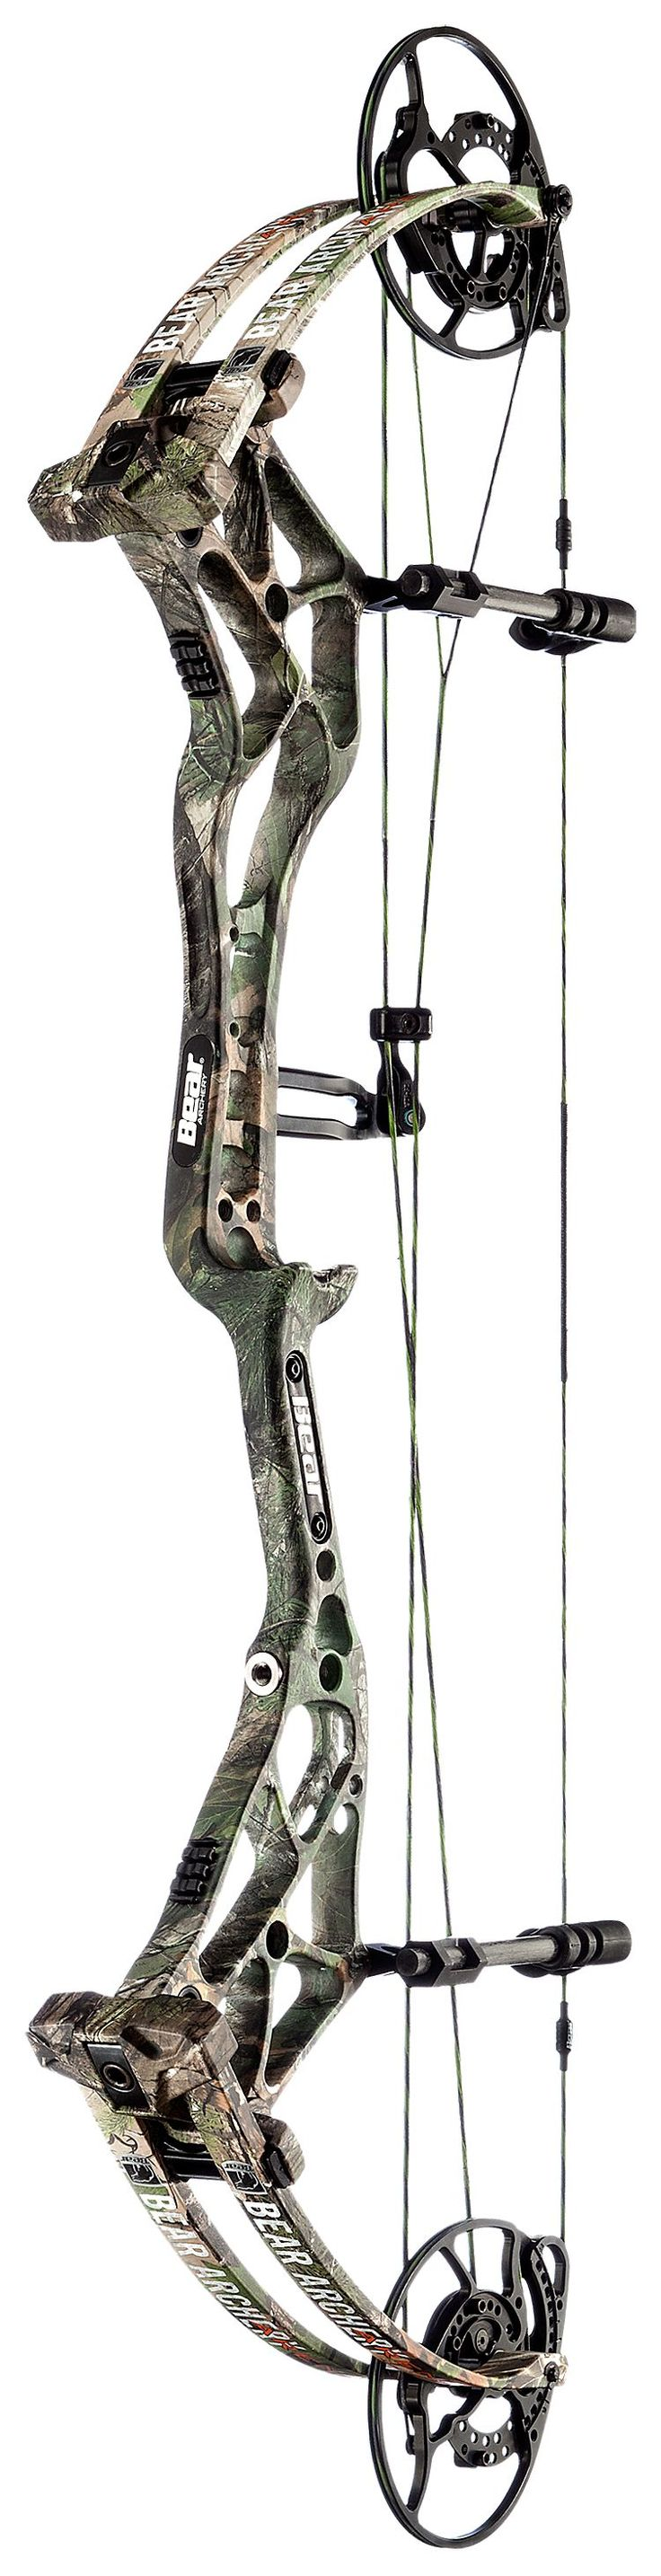 Bear Archery Arena 30 Compound Bow (Bow only)   Bass Pro Shops